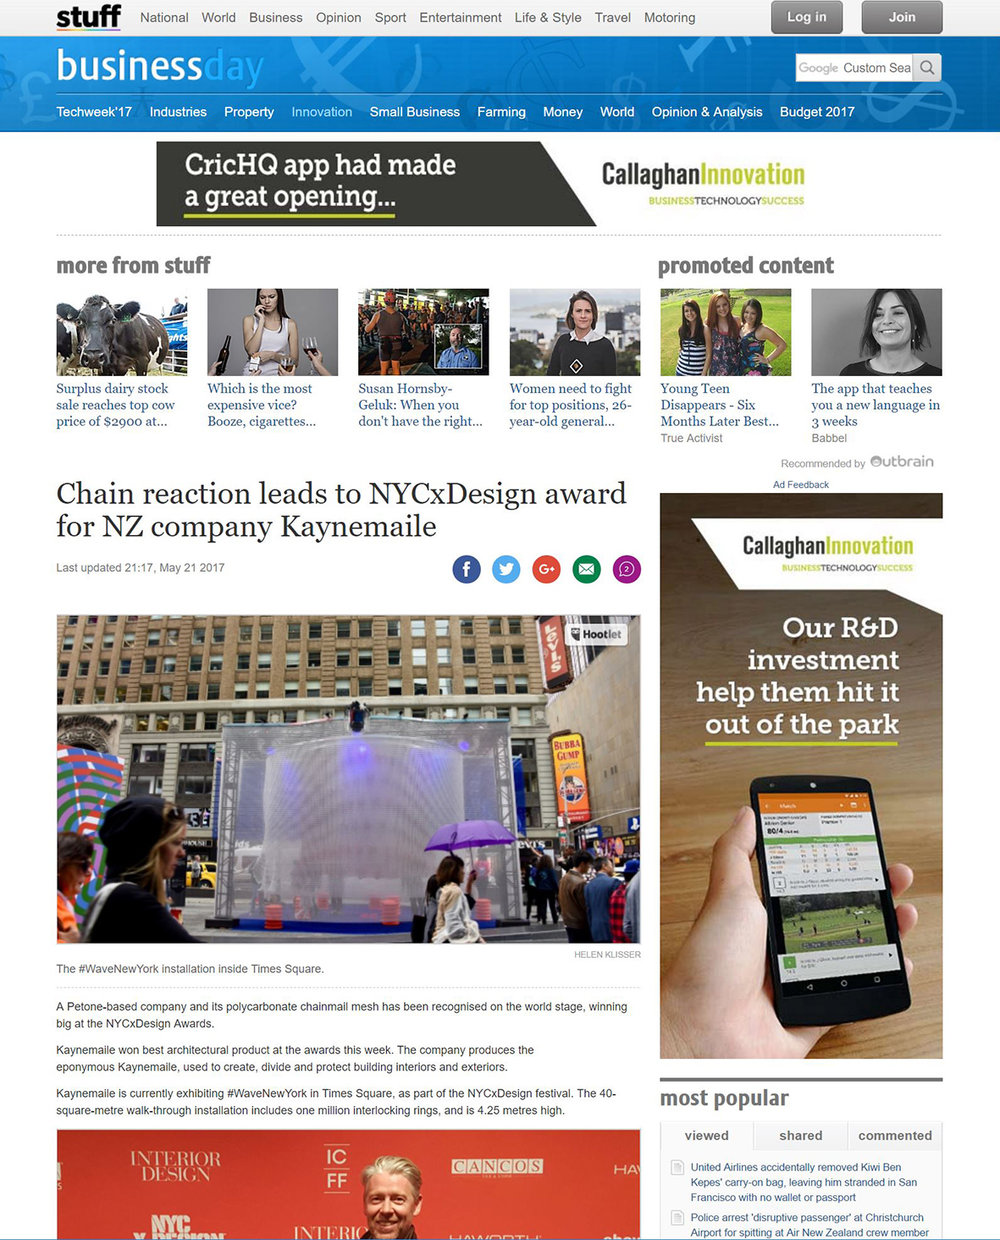 Chain reaction leads to NYCxDesign award for NZ company Kaynemaile